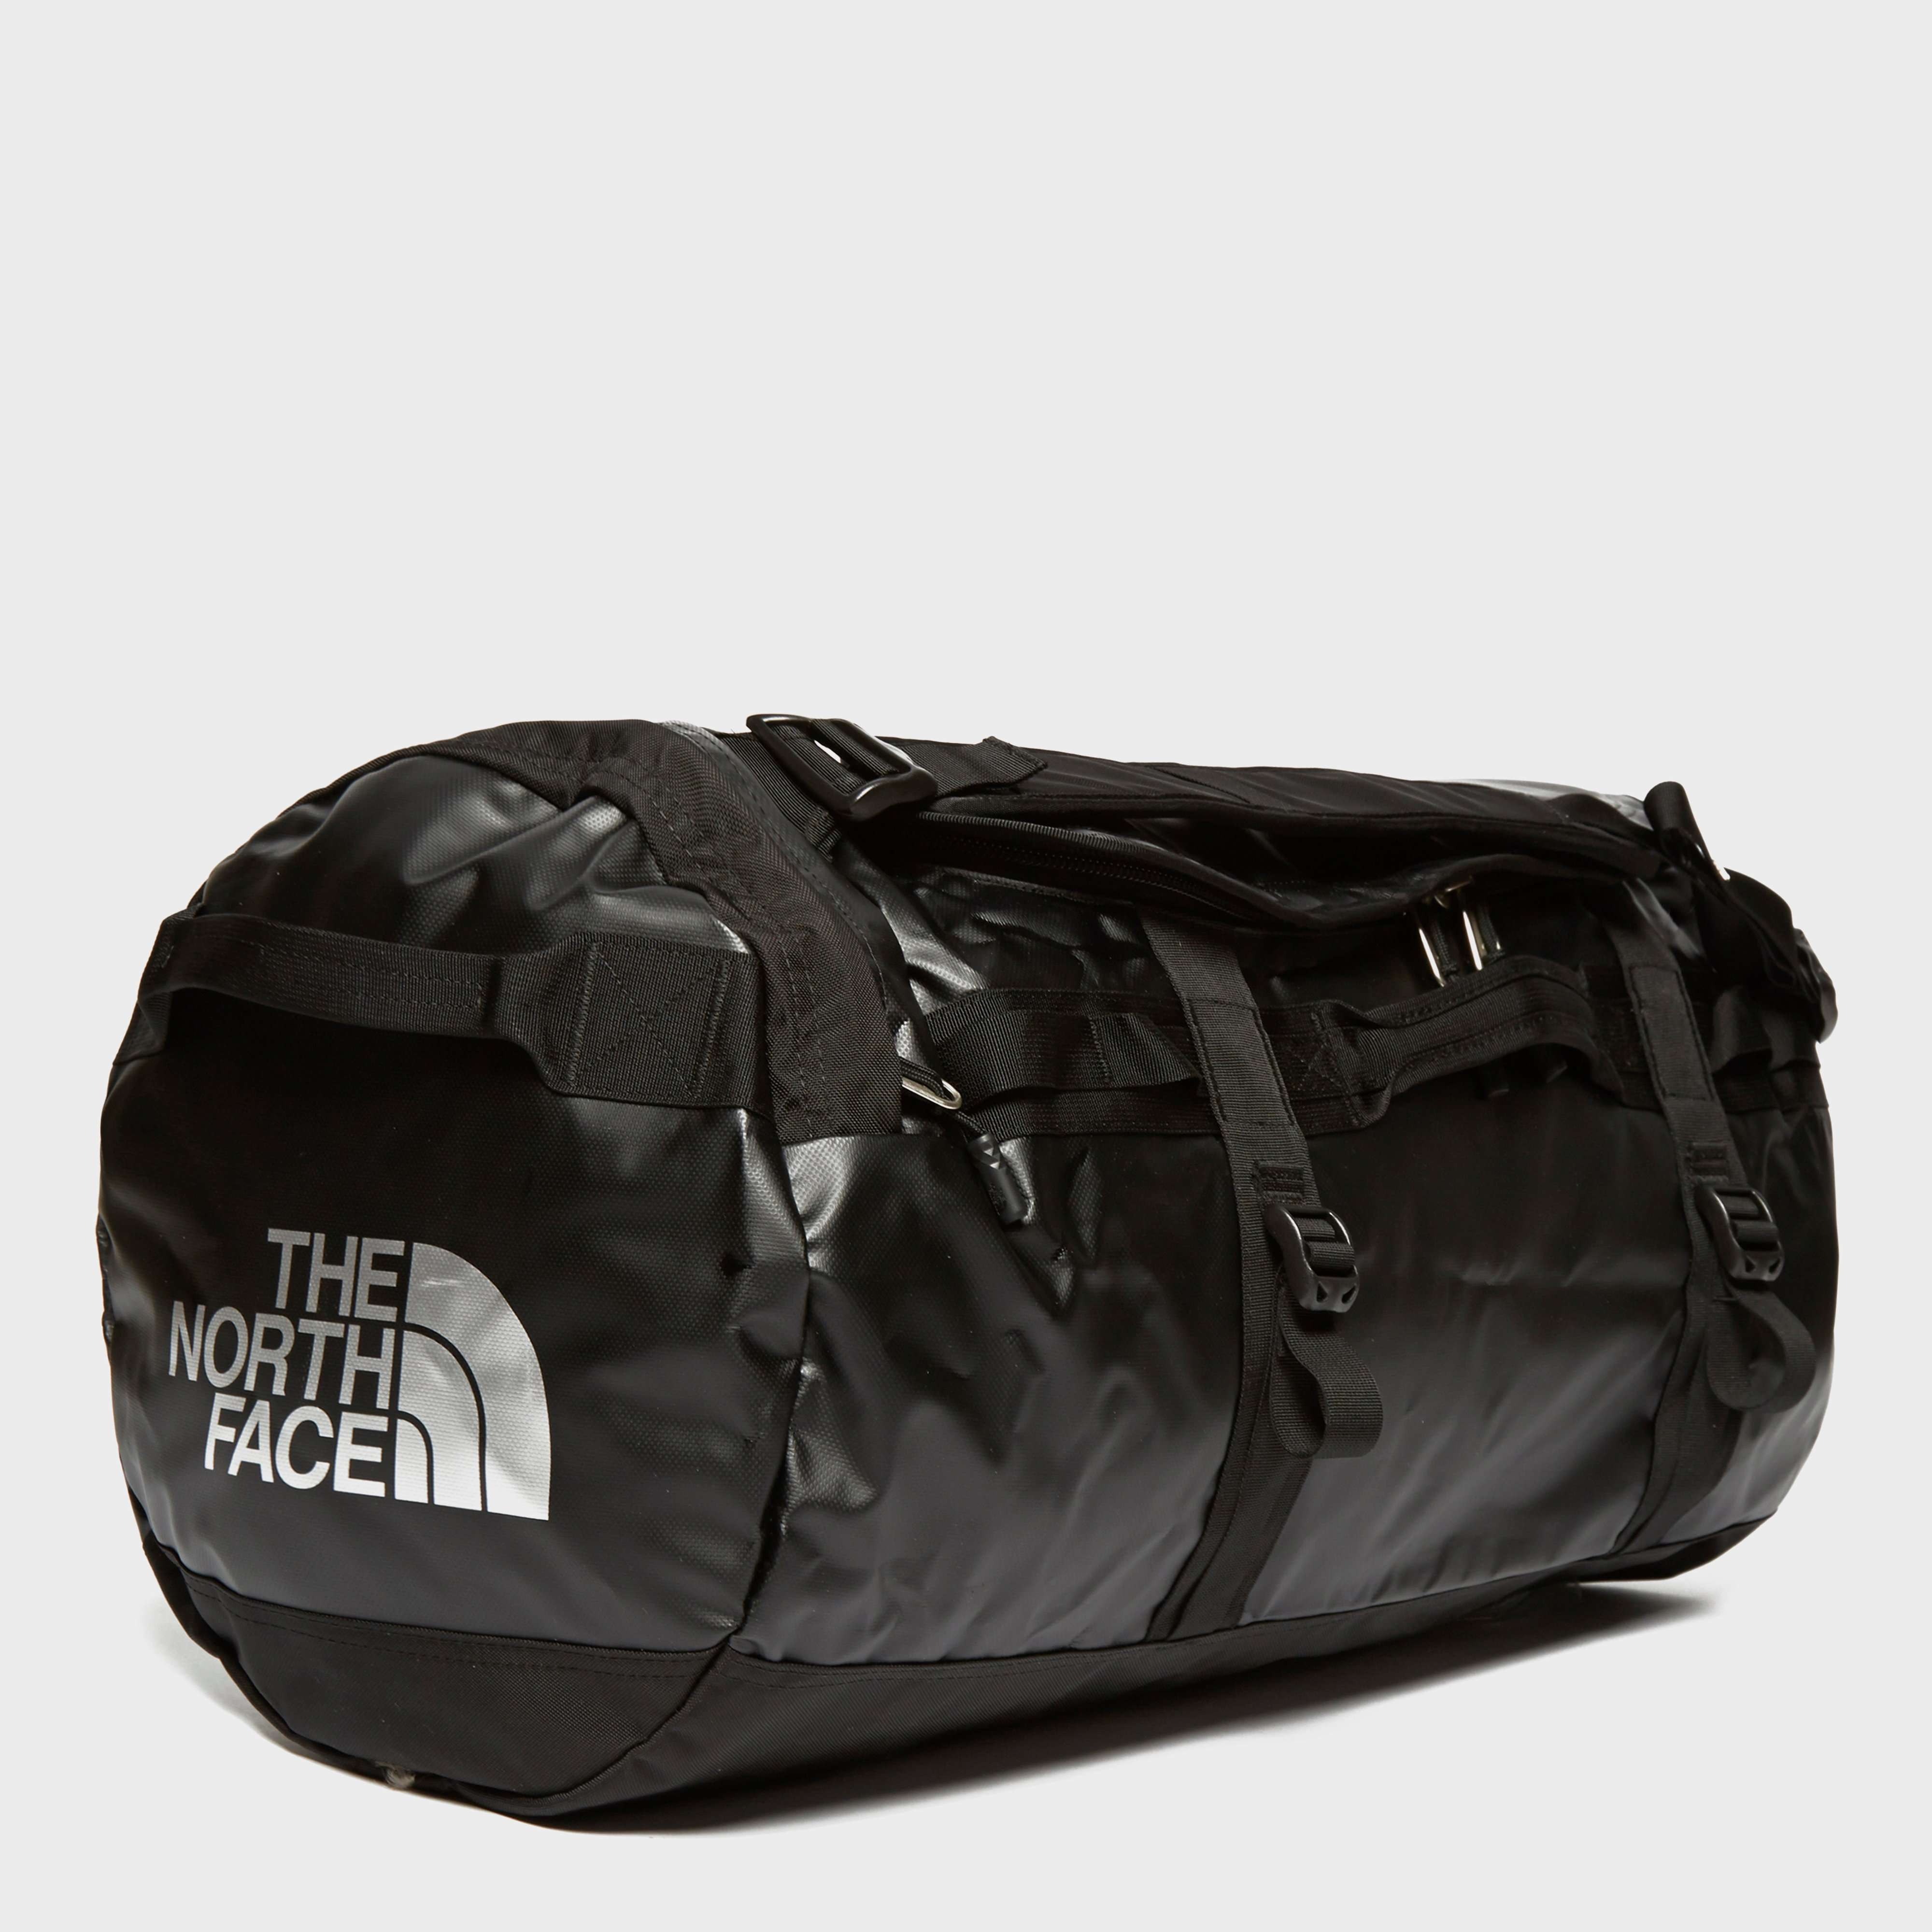 THE NORTH FACE Base Camp Duffel Bag (X-Large)